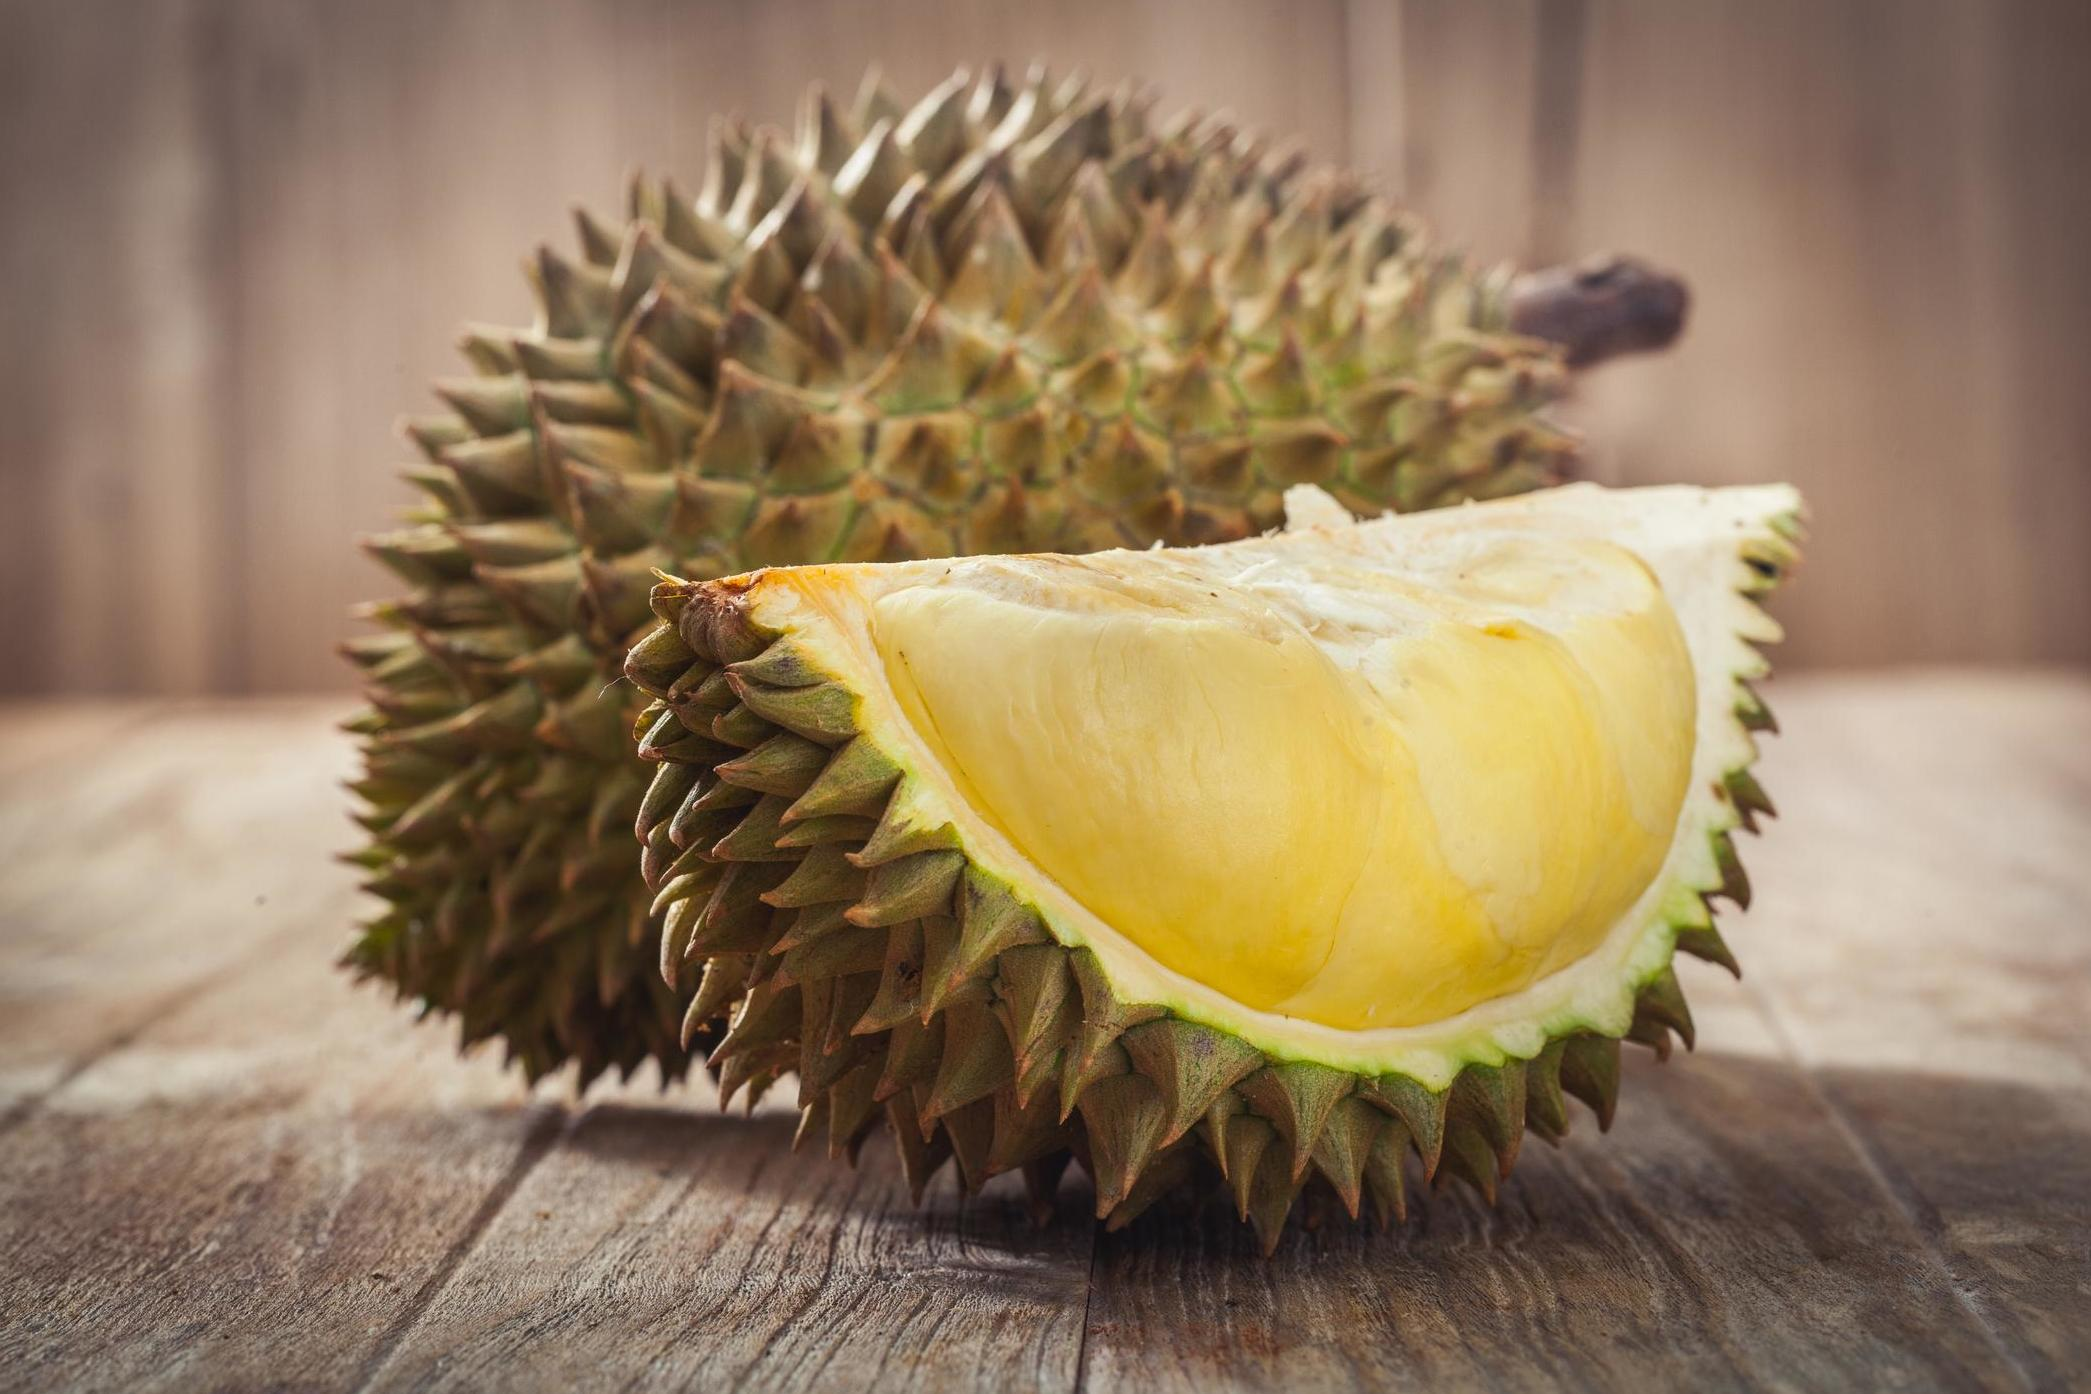 University library evacuated after 'world's smelliest fruit' prompts fears of gas leak 1